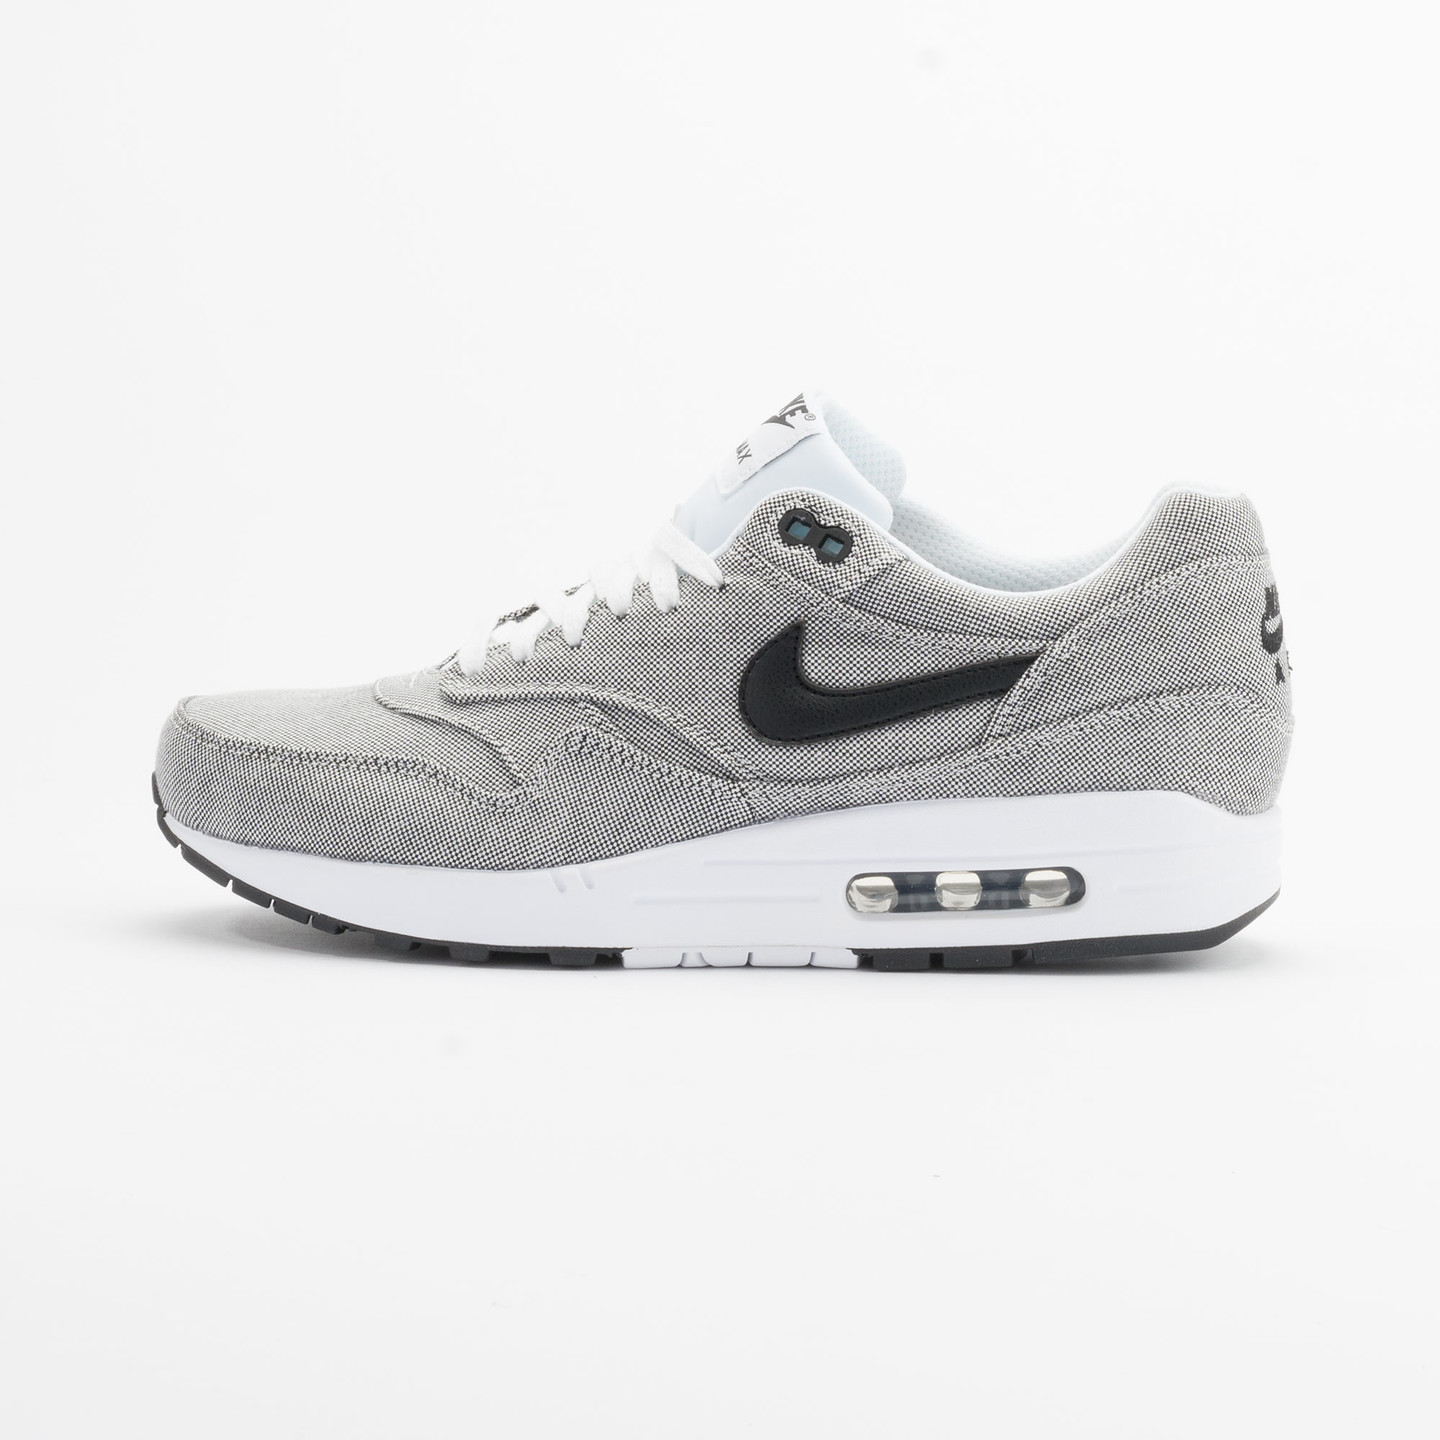 Nike Air Max 1 Prm Picknick Pack Black/White 512033-103-44.5